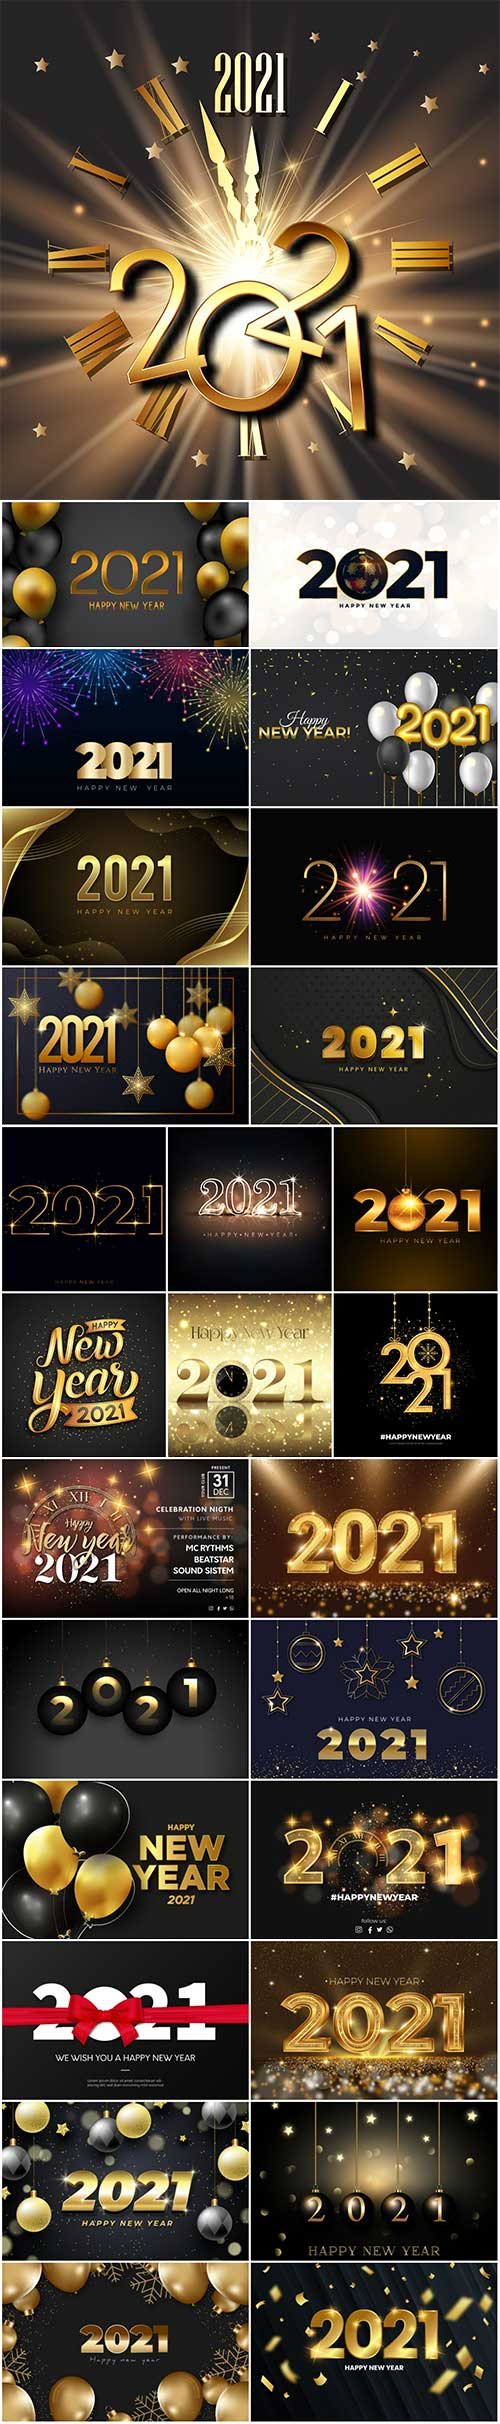 Happy new year 2021 night event vector poster with golden texture